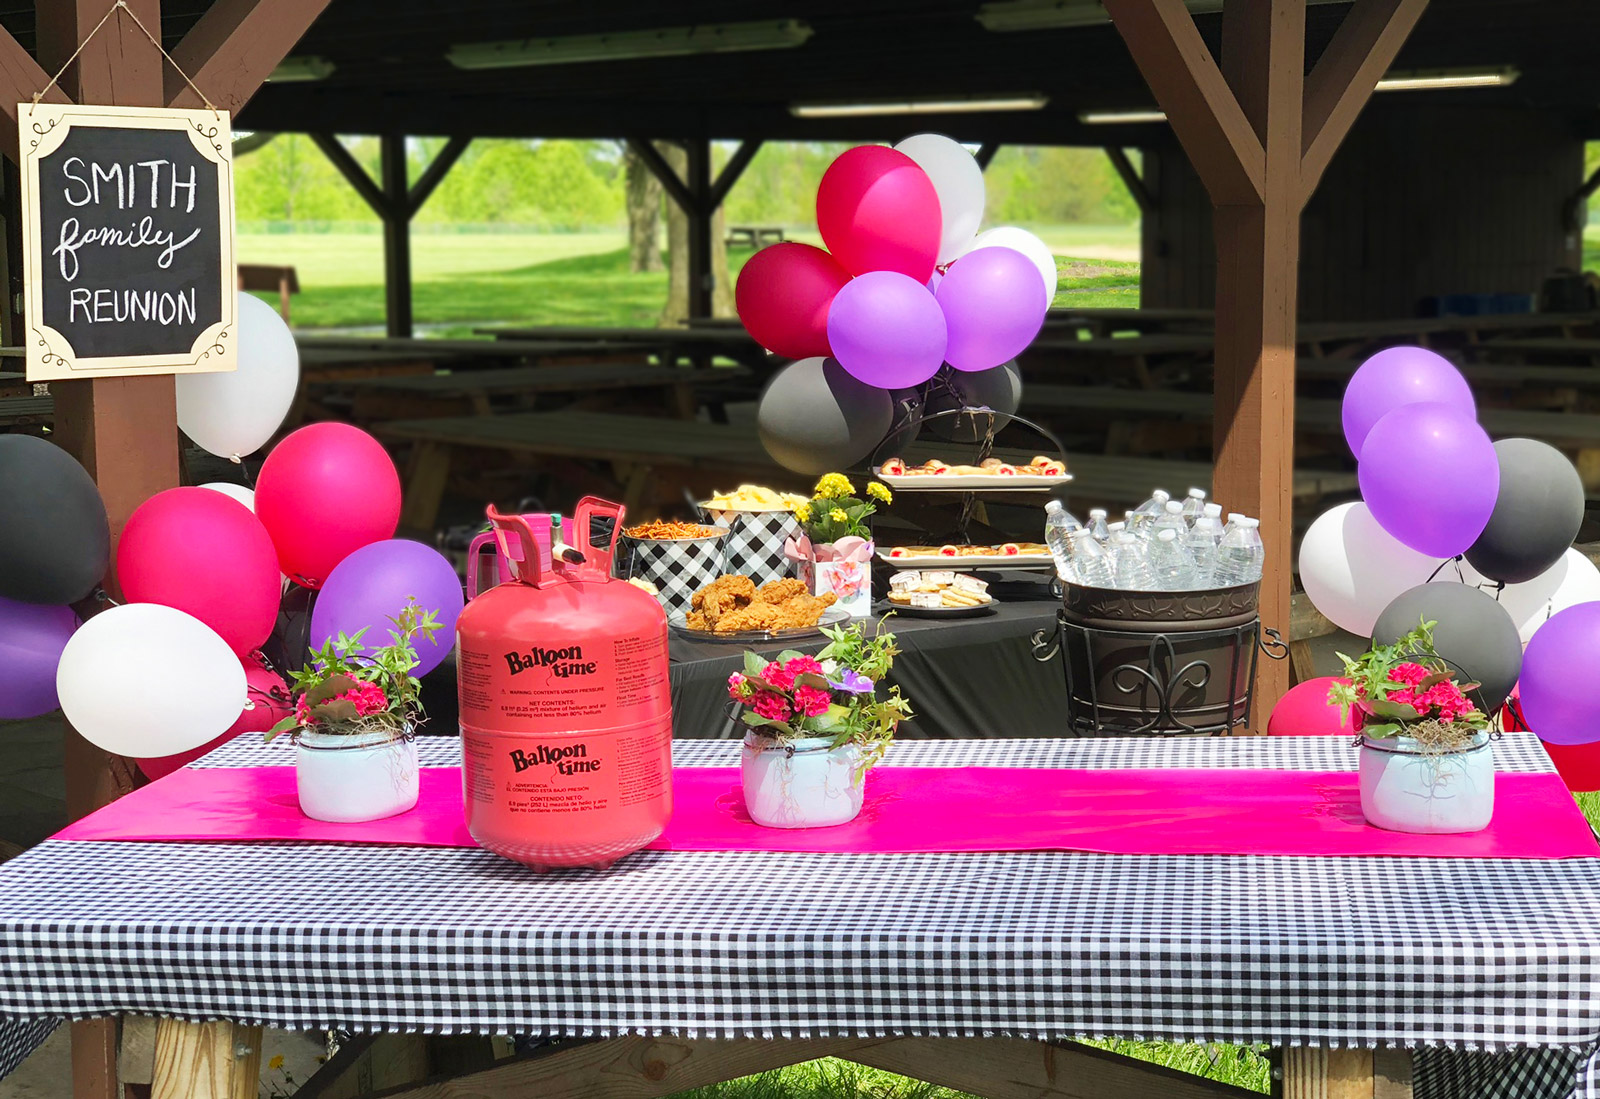 Party decorations for family reunion